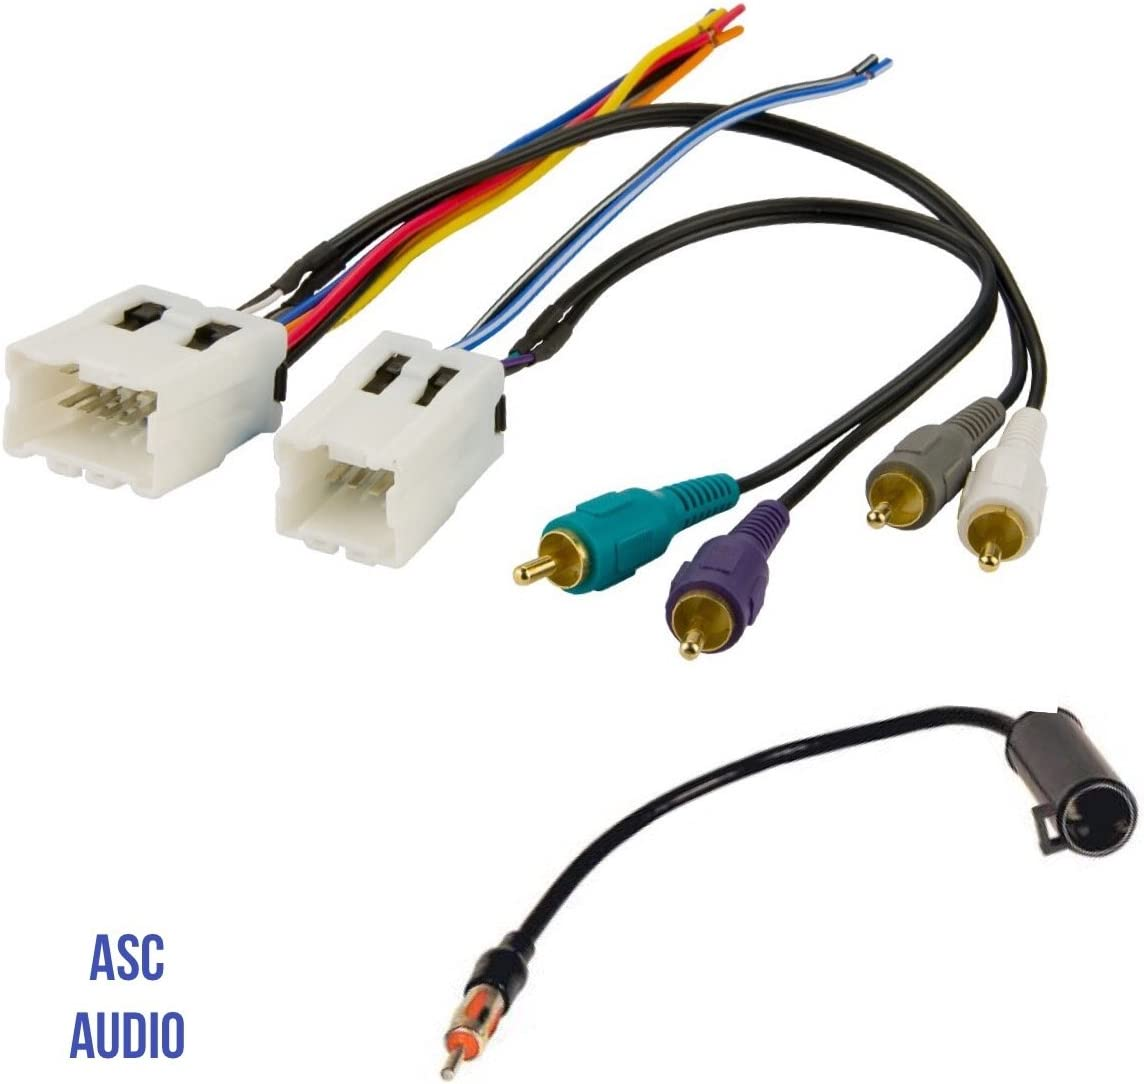 [ZHKZ_3066]  Amazon.com: ASC Audio Car Stereo Radio Wire Harness and Antenna Adapter to  Aftermarket Radio for some Infiniti G35 FX35 FX45 Nissan 350z Altima Maxima  etc. w/ Bose Factory Amp - Vehicles listed | Infiniti Wiring Harness |  | Amazon.com